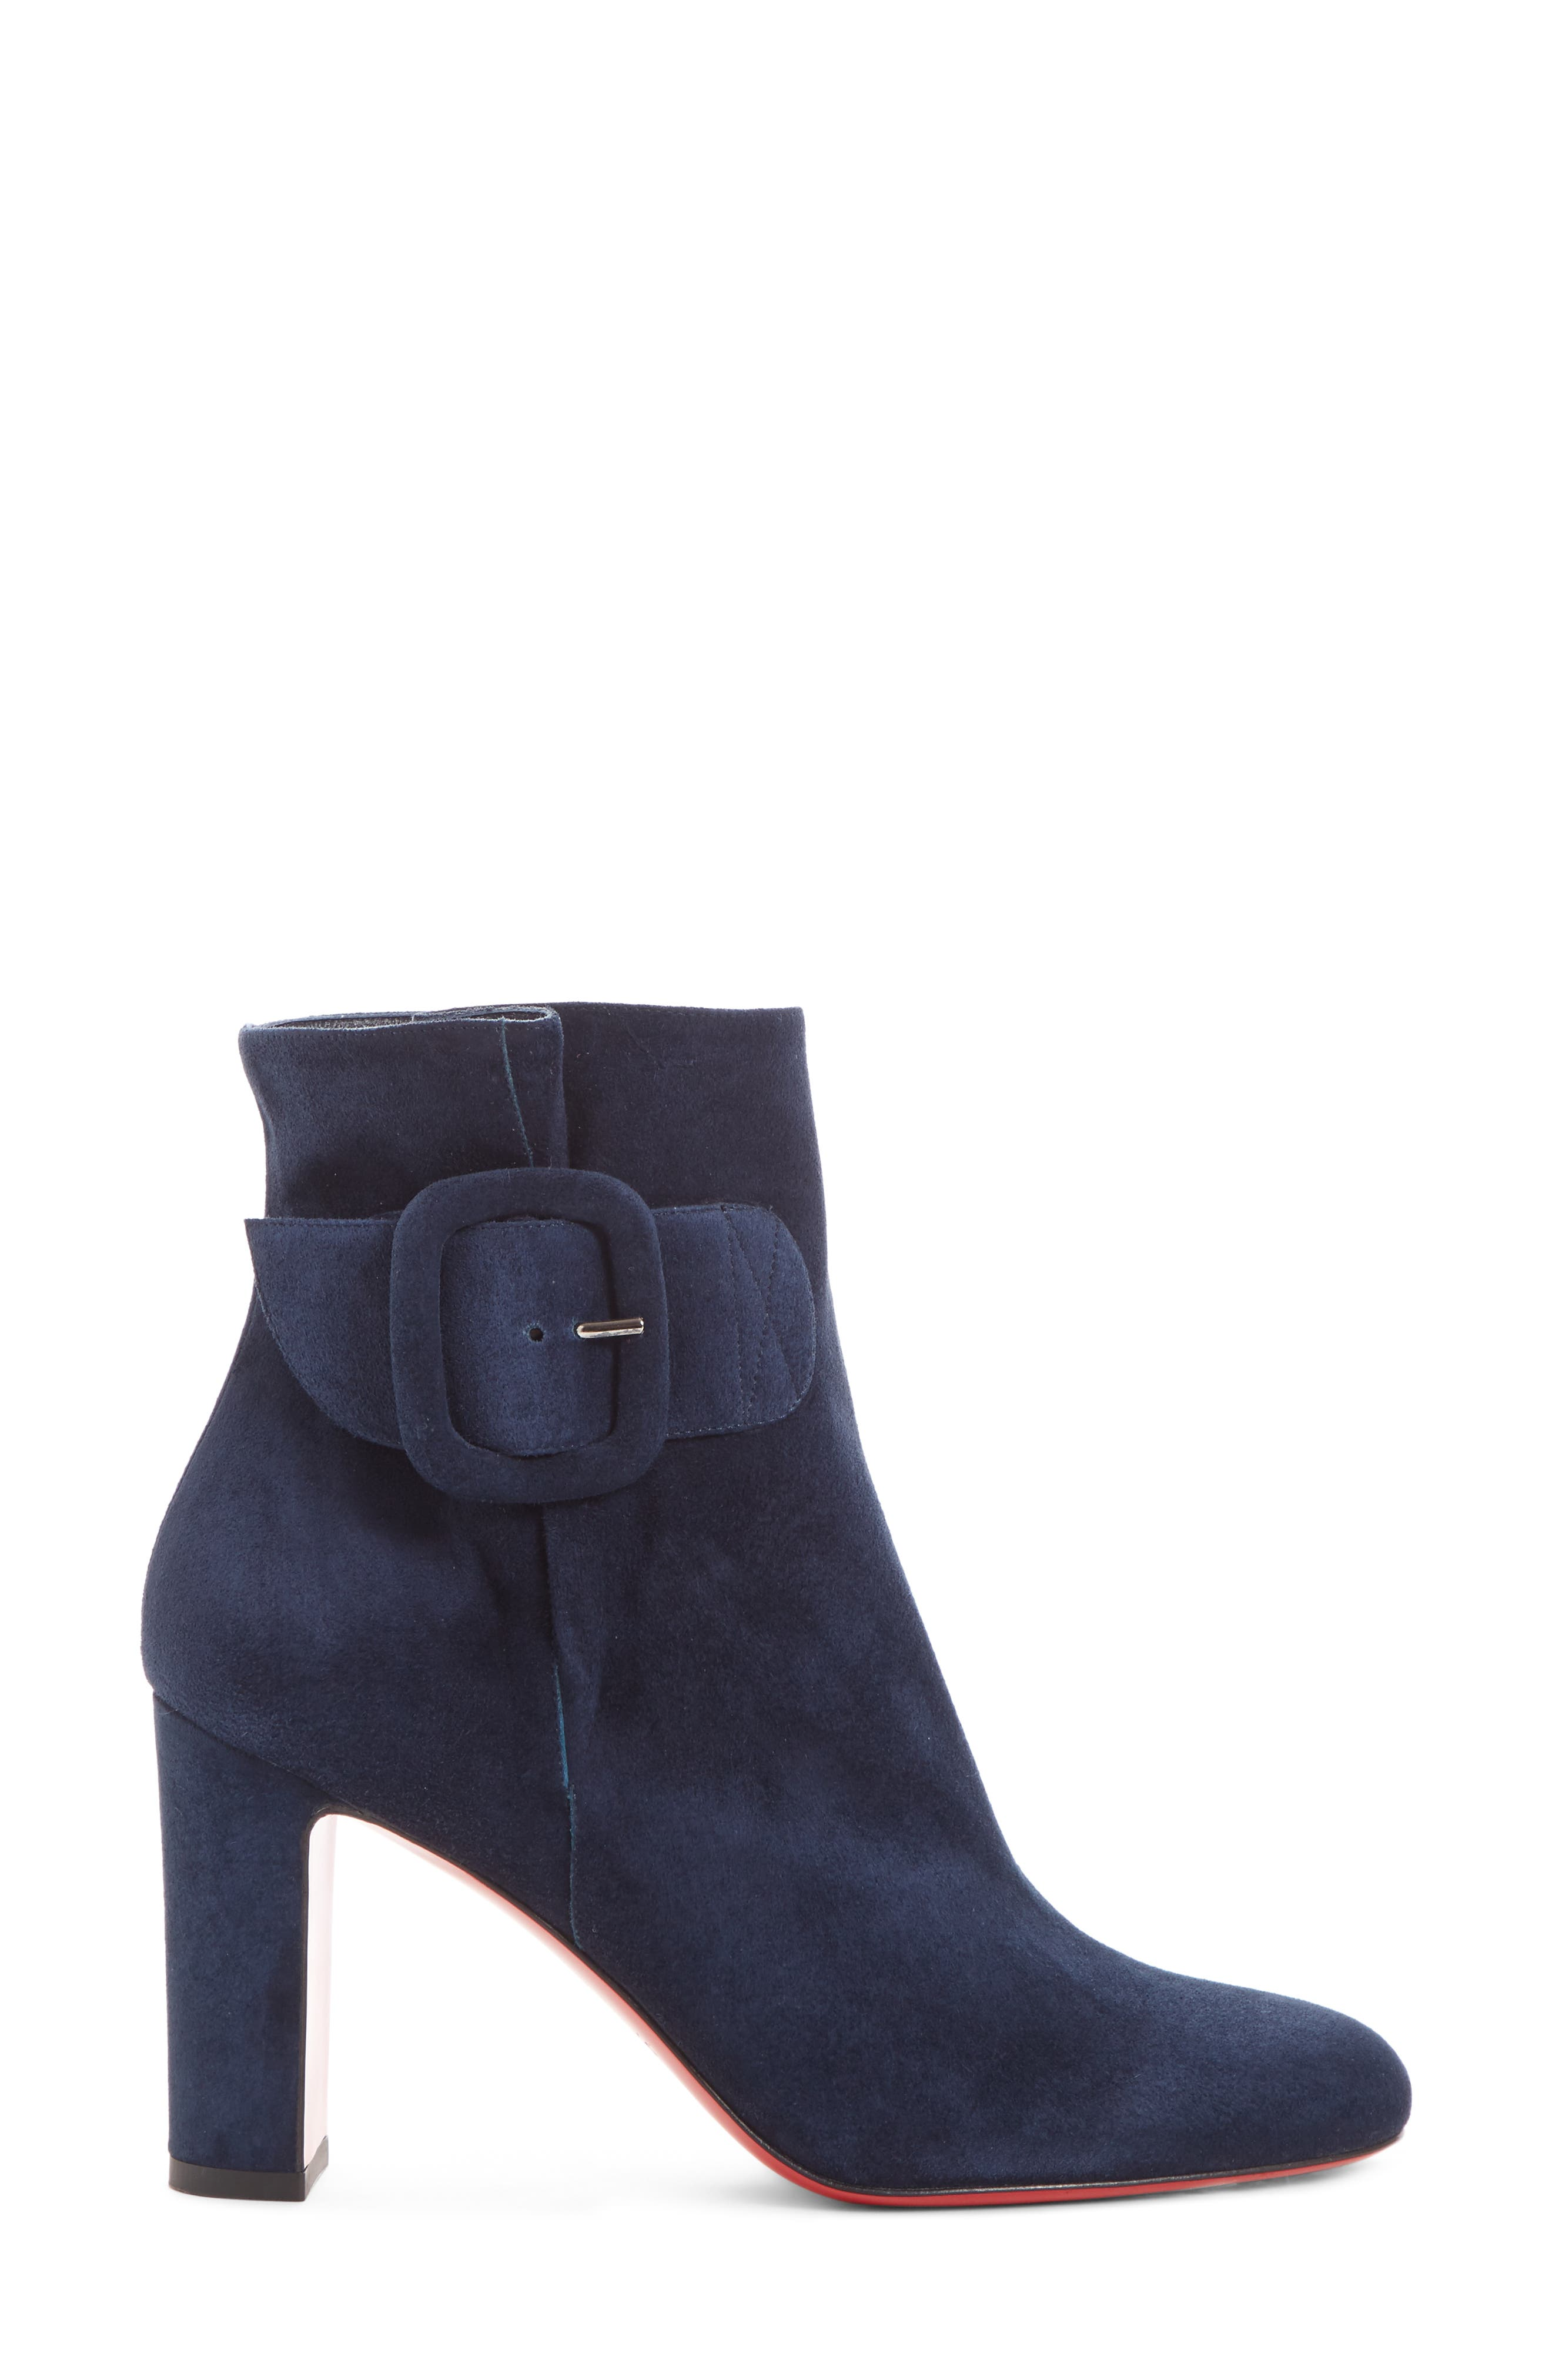 Tres Olivia Buckle Bootie,                             Alternate thumbnail 3, color,                             MARINE SUEDE